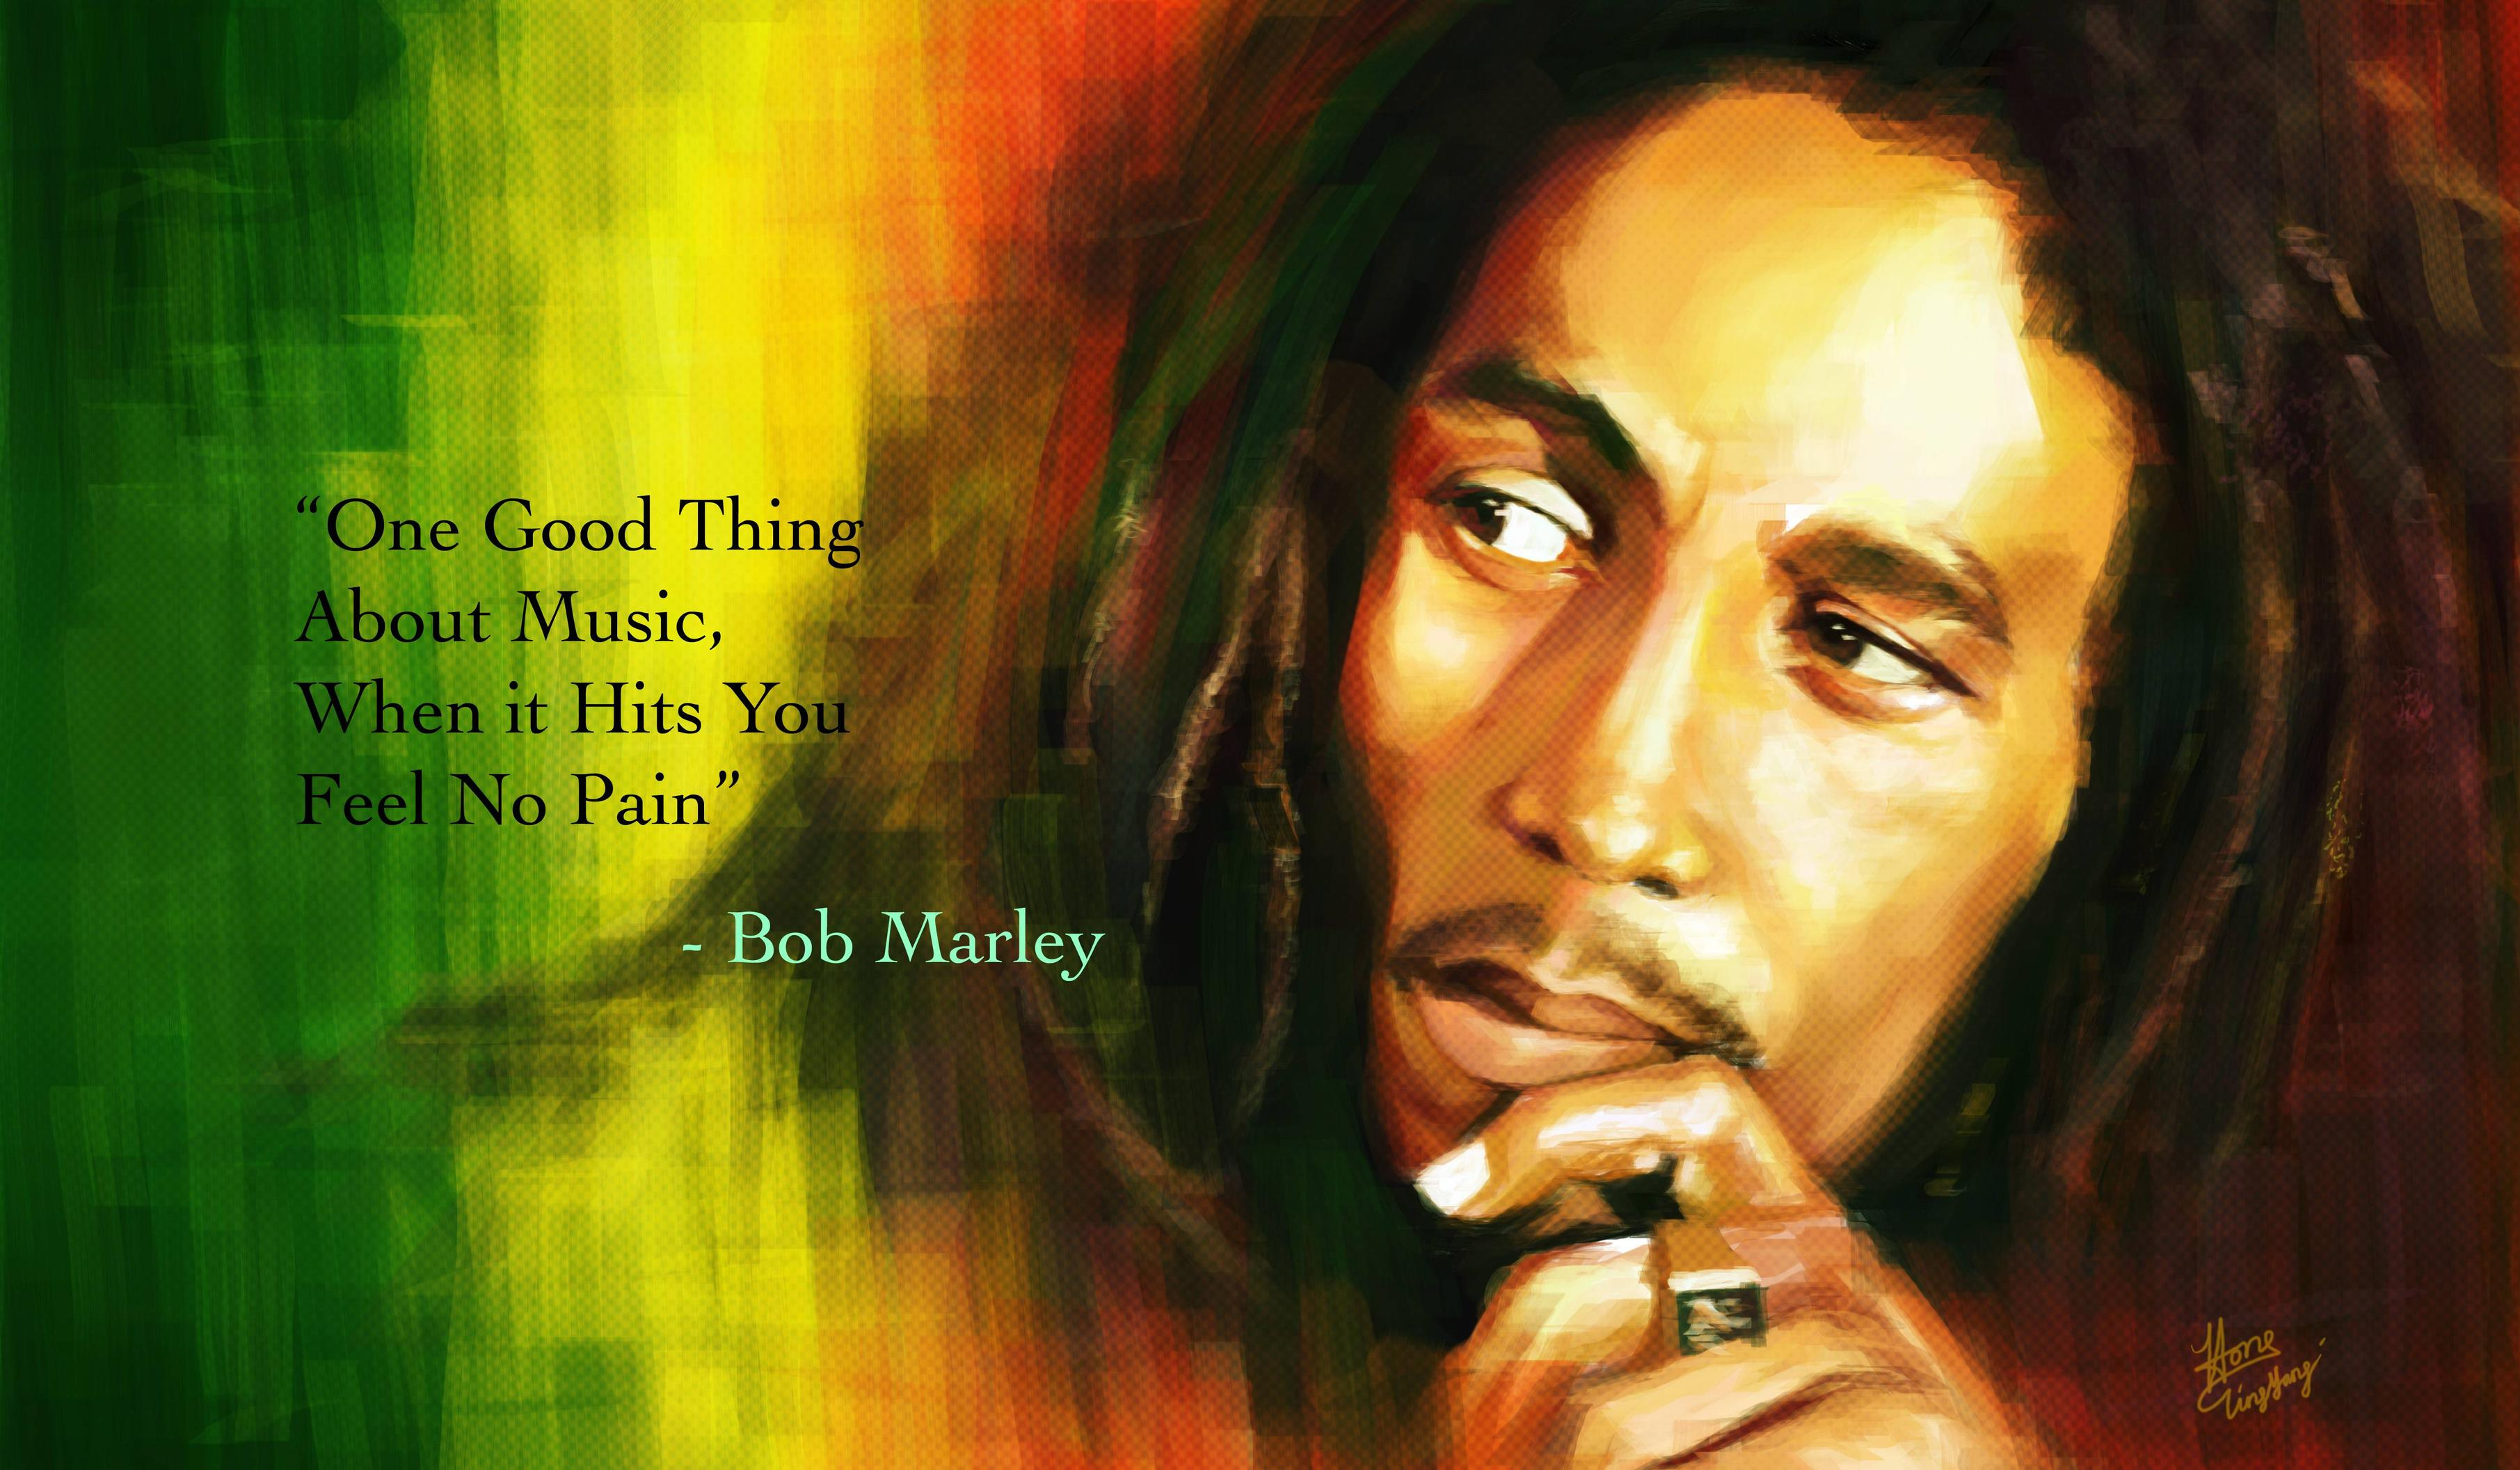 「One good thing about music, when it hits you, you feel no pain.」 - Bob Marley